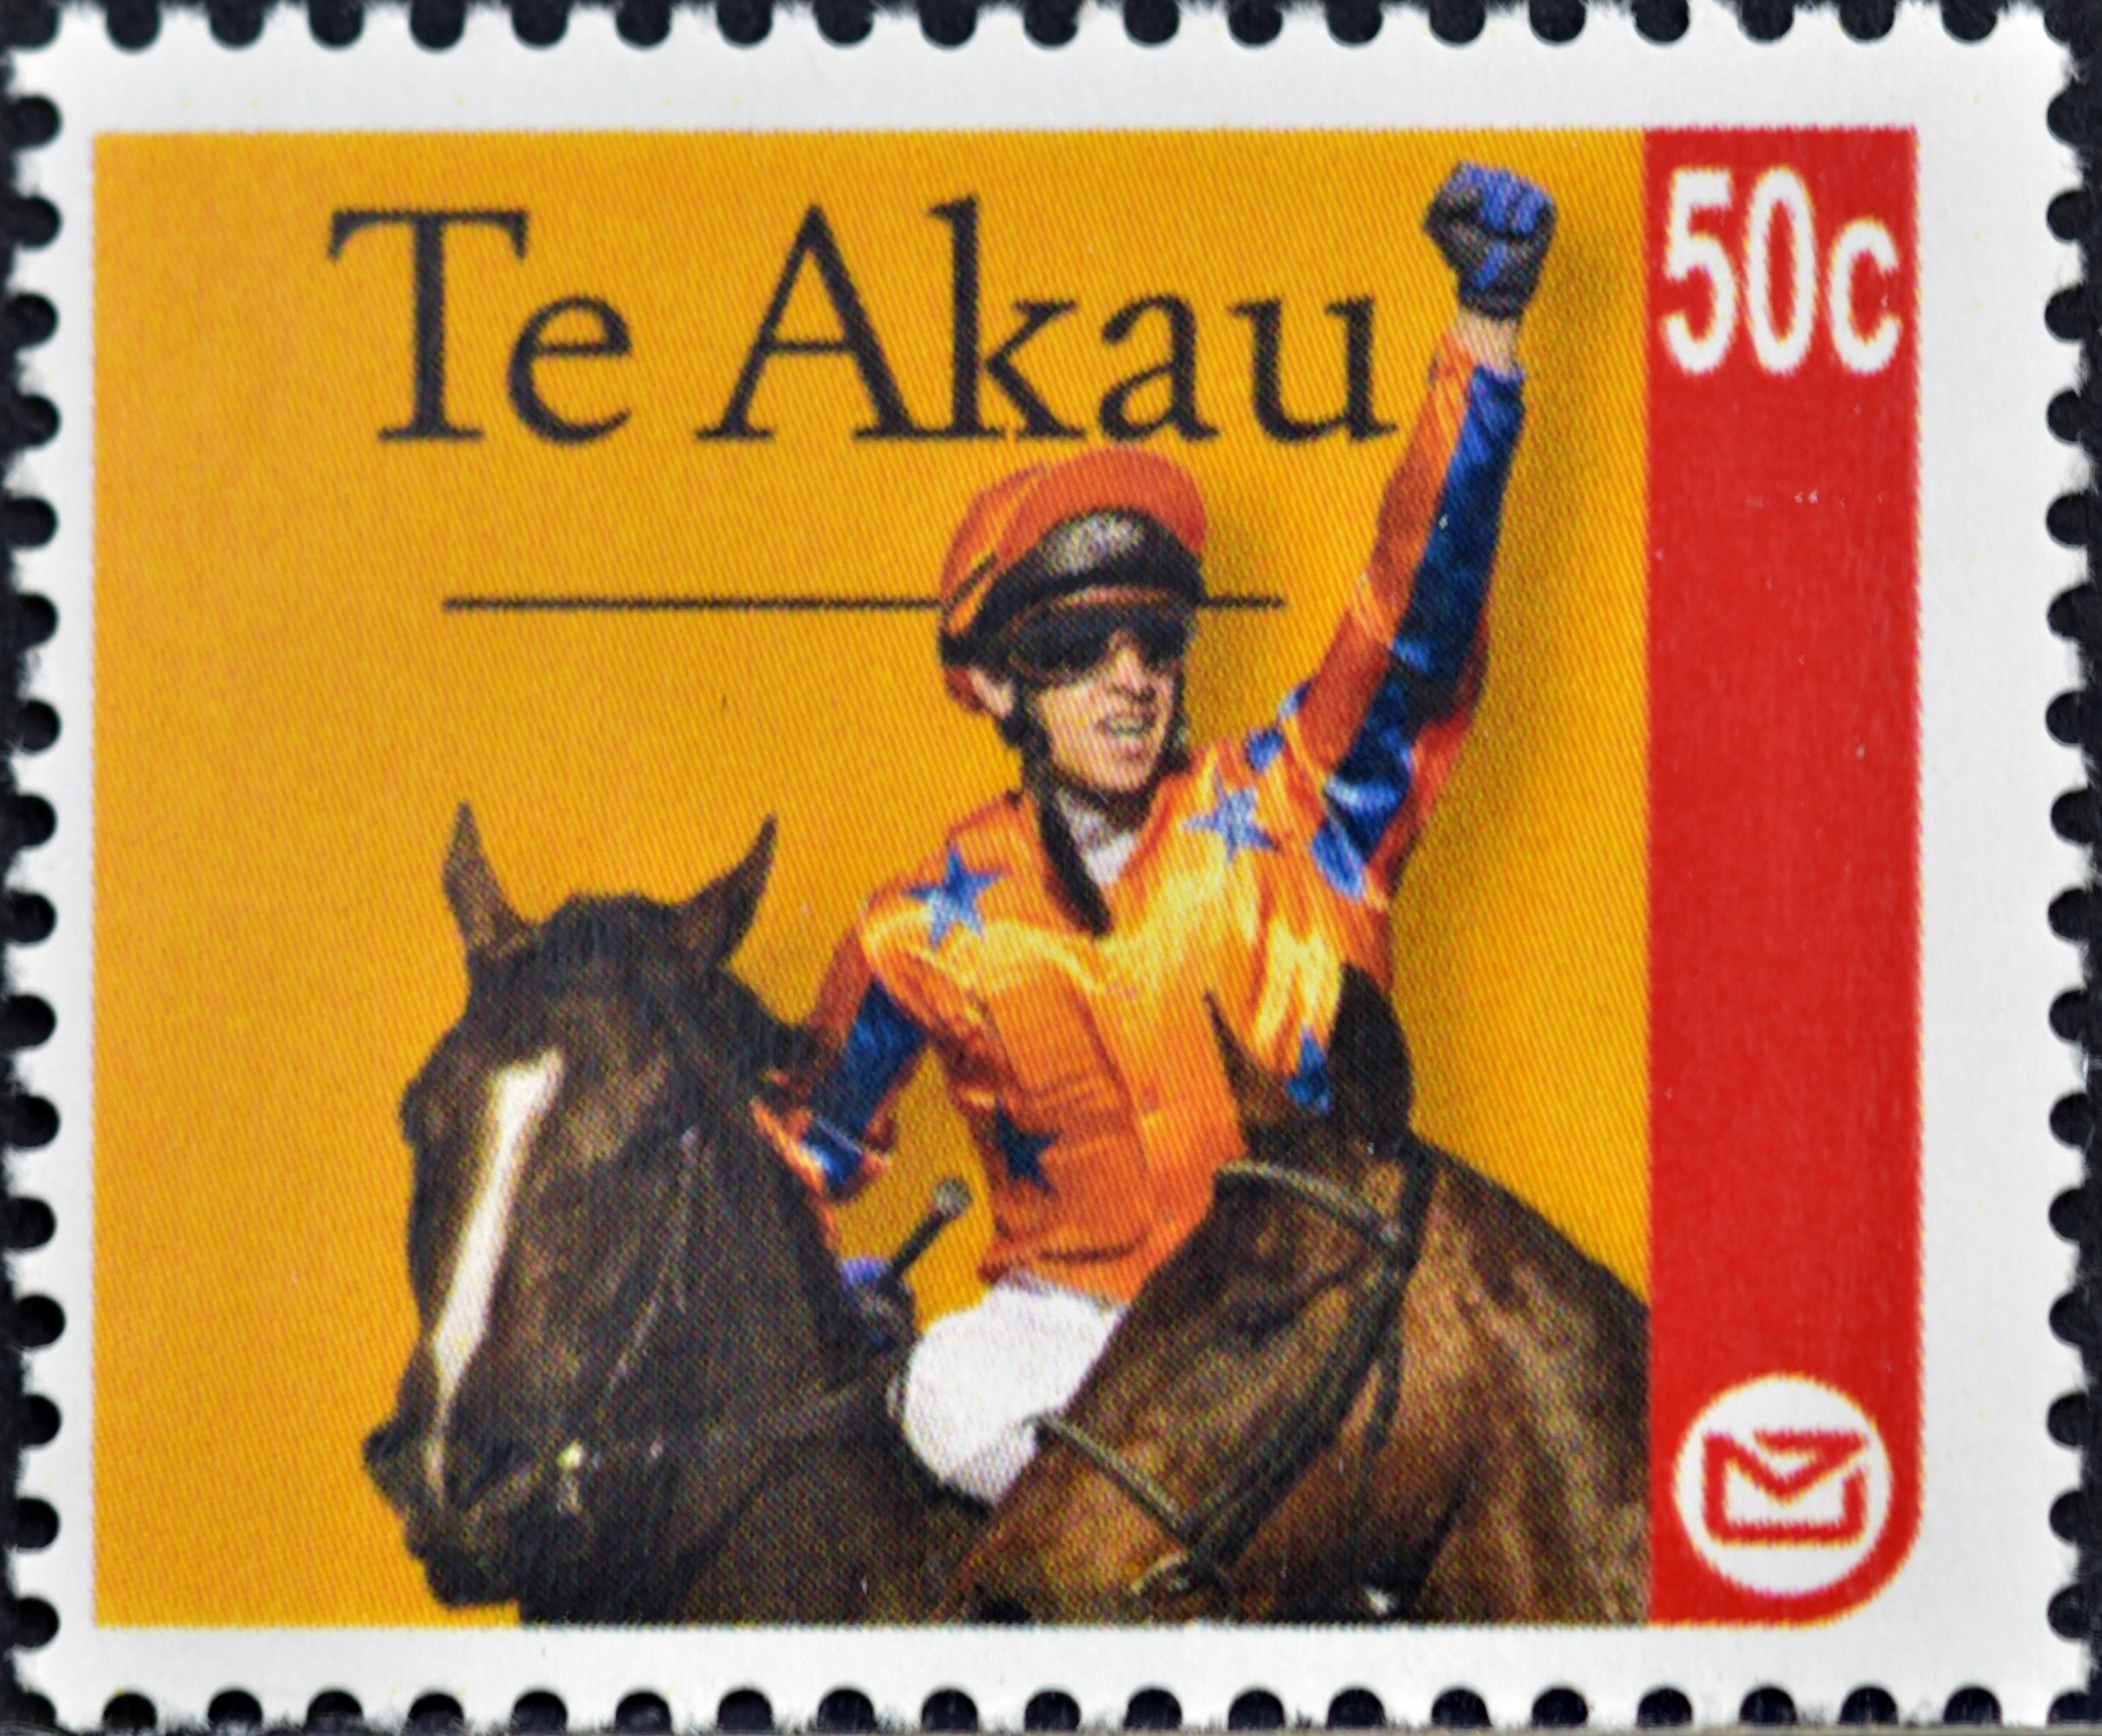 New Zealand (1230) 2009 Personalised Postage Stamps Te